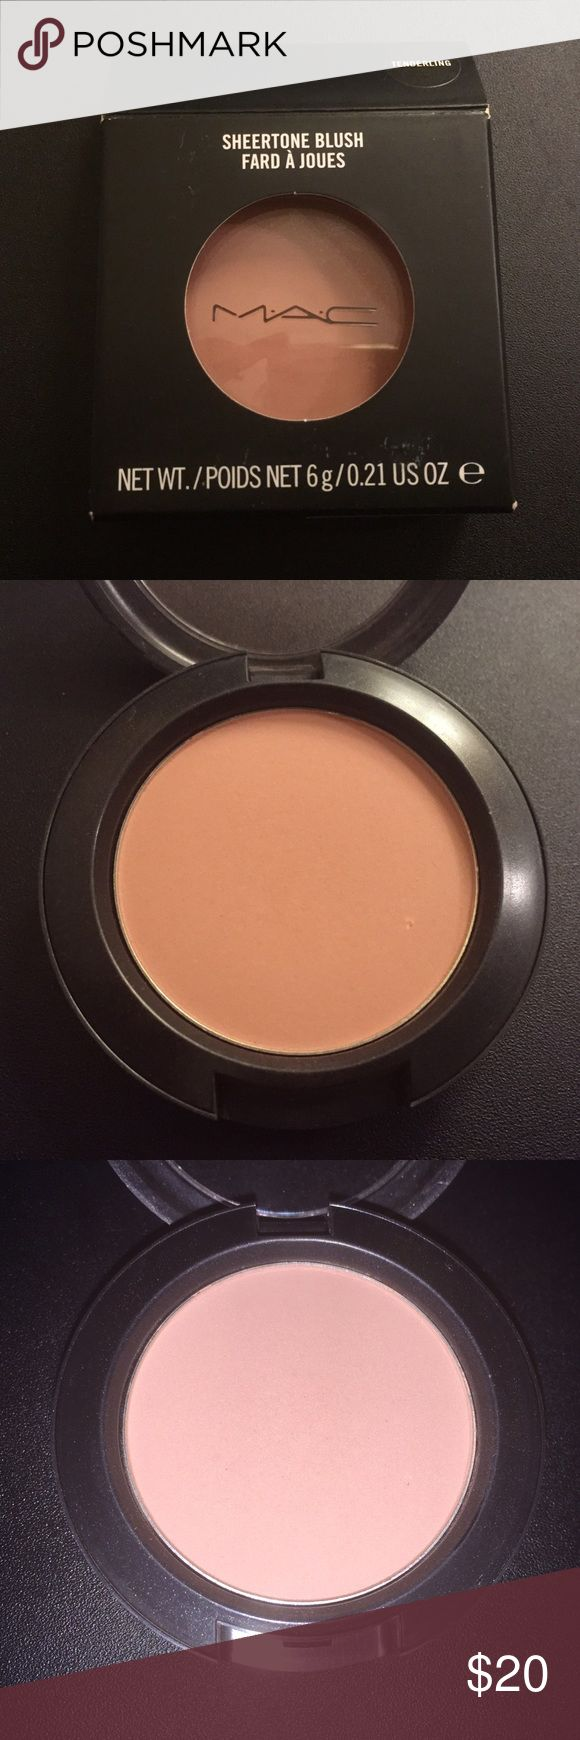 MAC Tenderling *Discontinued* Discontinued MAC sheertone blush in Tenderling. Purchased at CCO (cosmetic company outlet). Marking on bottom of box. Small knick on bottom right of blush *see photos*. Never swatched or used. Only opened for photo and inspection. Authentic MAC blush. No trades please. Firm price. Thanks for browsing! MAC Cosmetics Makeup Blush